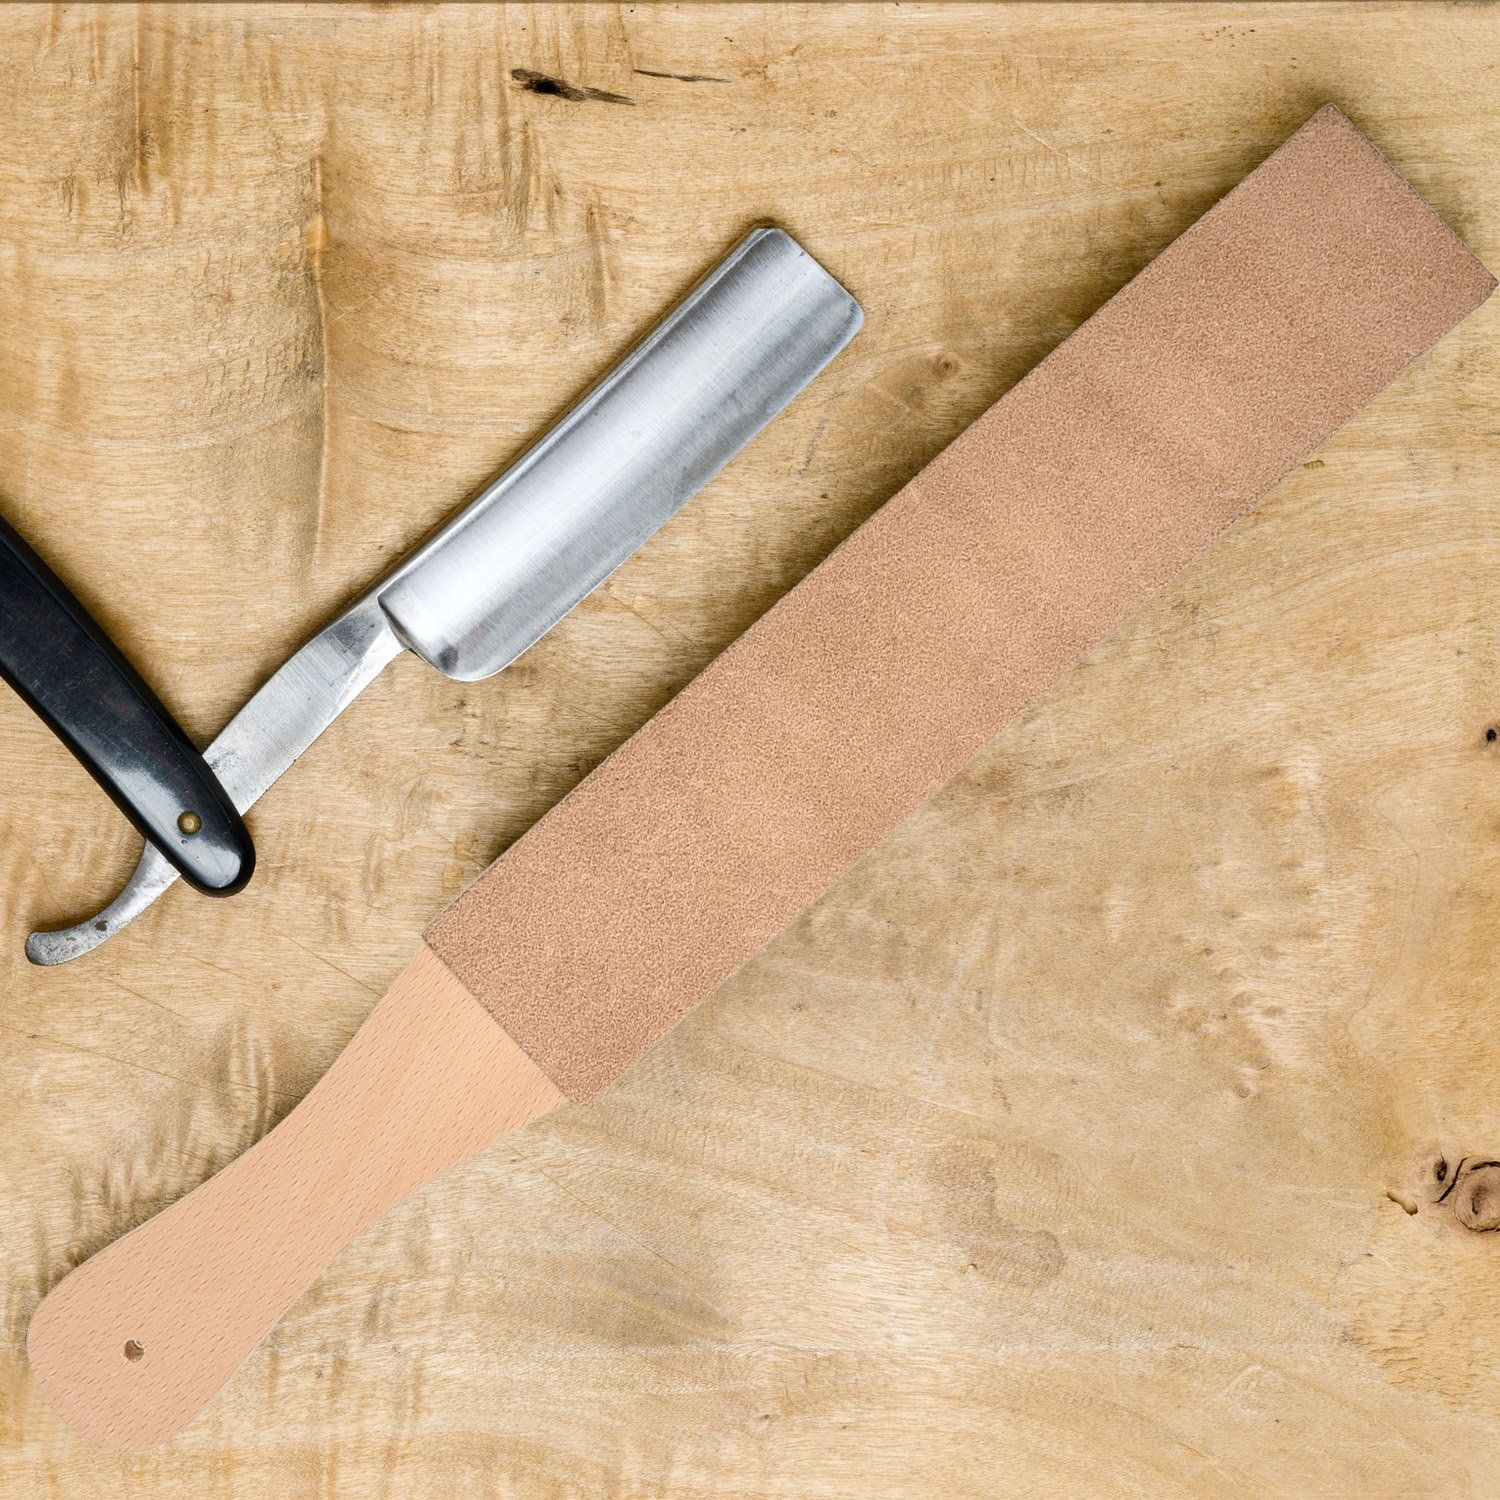 Hestya 3 Pieces Leather Strop with Compounds Kit, 1 Piece